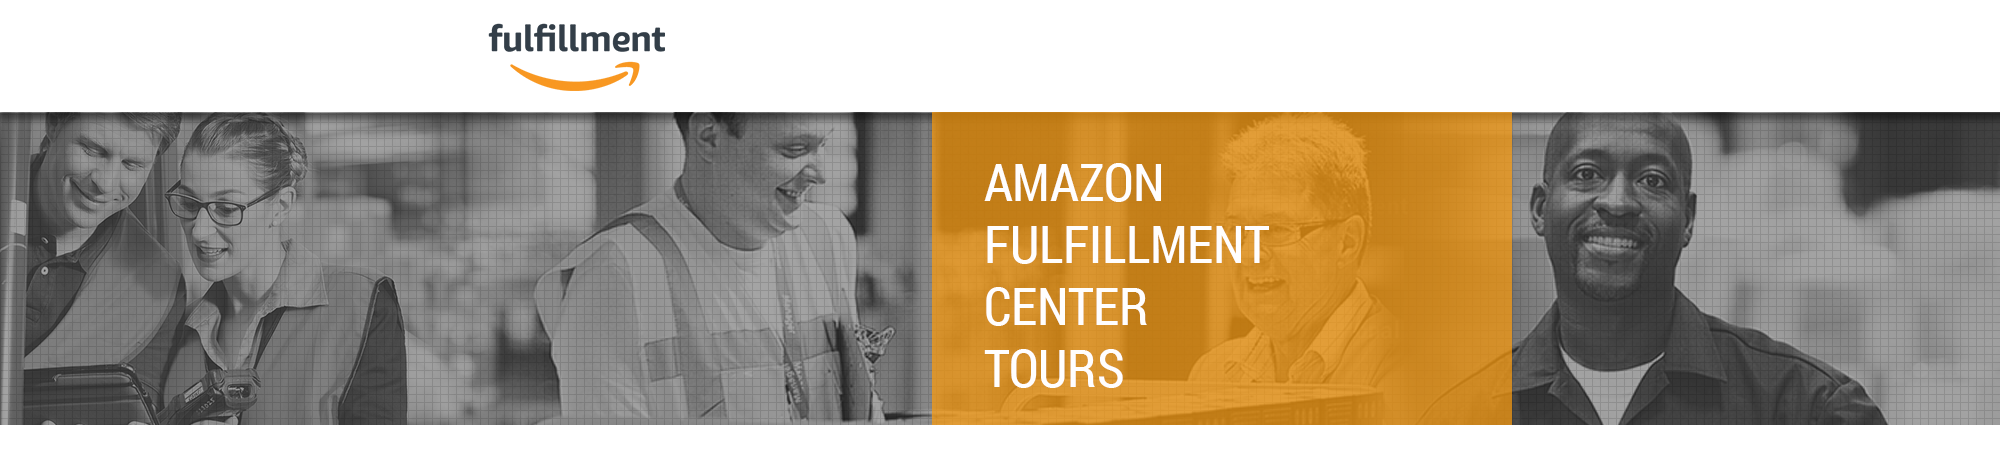 Amazon Fulfillment Center Tour - Jeffersonville, IN